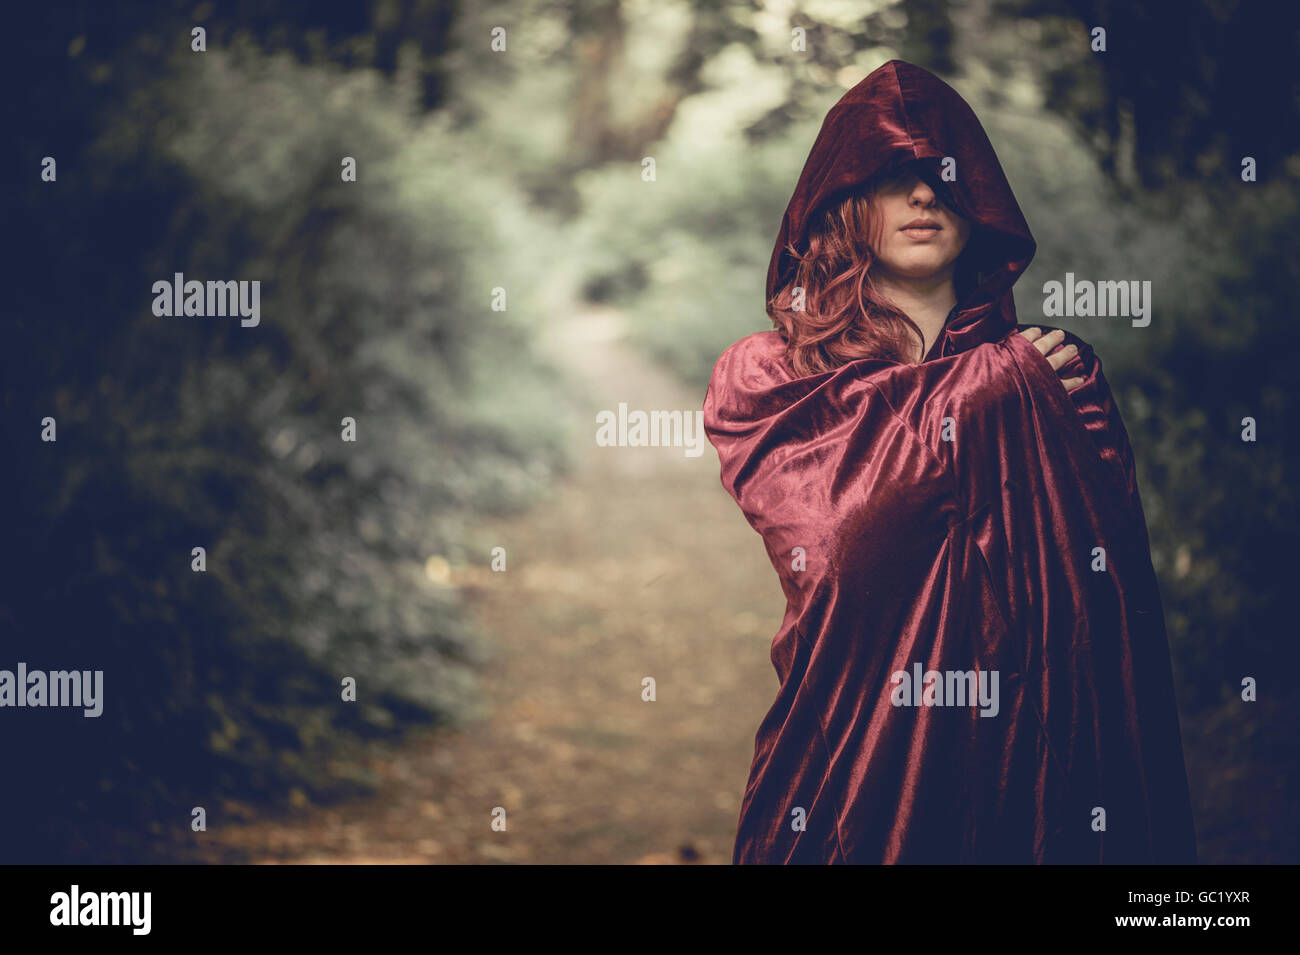 Woman of mystery: A young red haired redhead woman girl wearing a cape, obscuring her face, alone in a forest - Stock Image